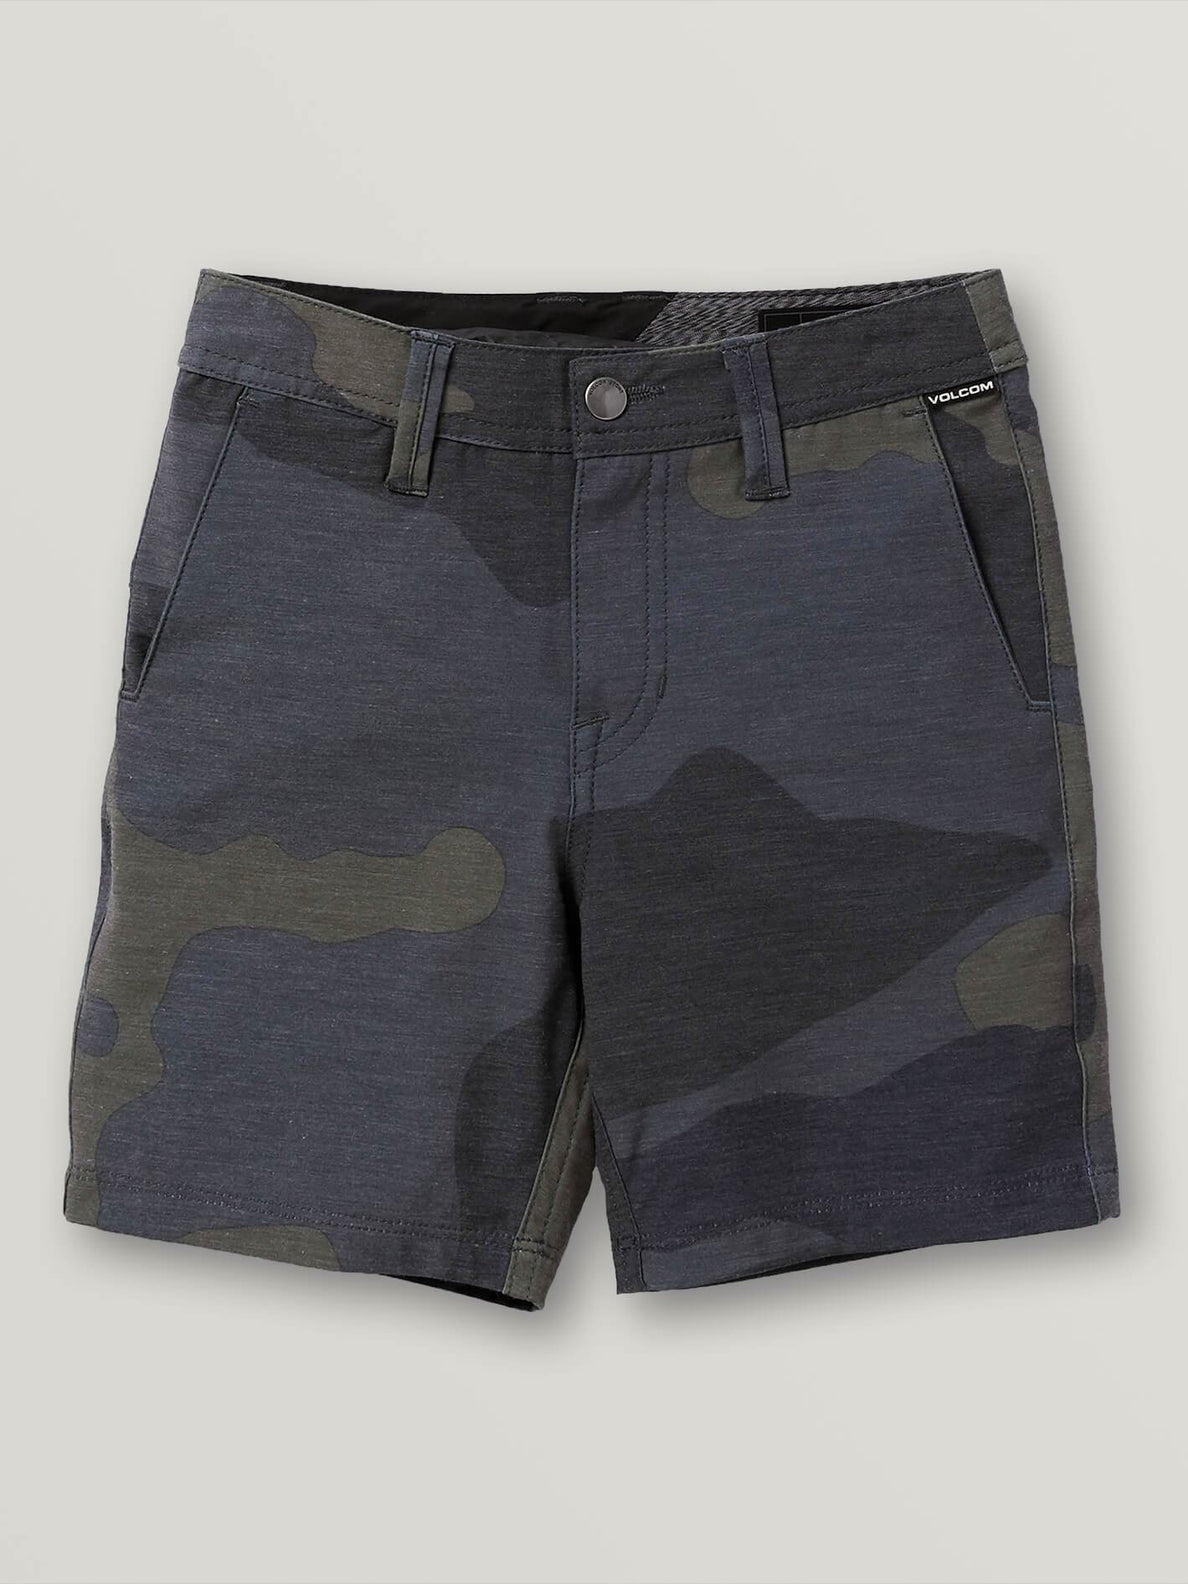 Little Boys Frickin Surf N' Turf Mix Hybrid Shorts In Dark Camo, Front View